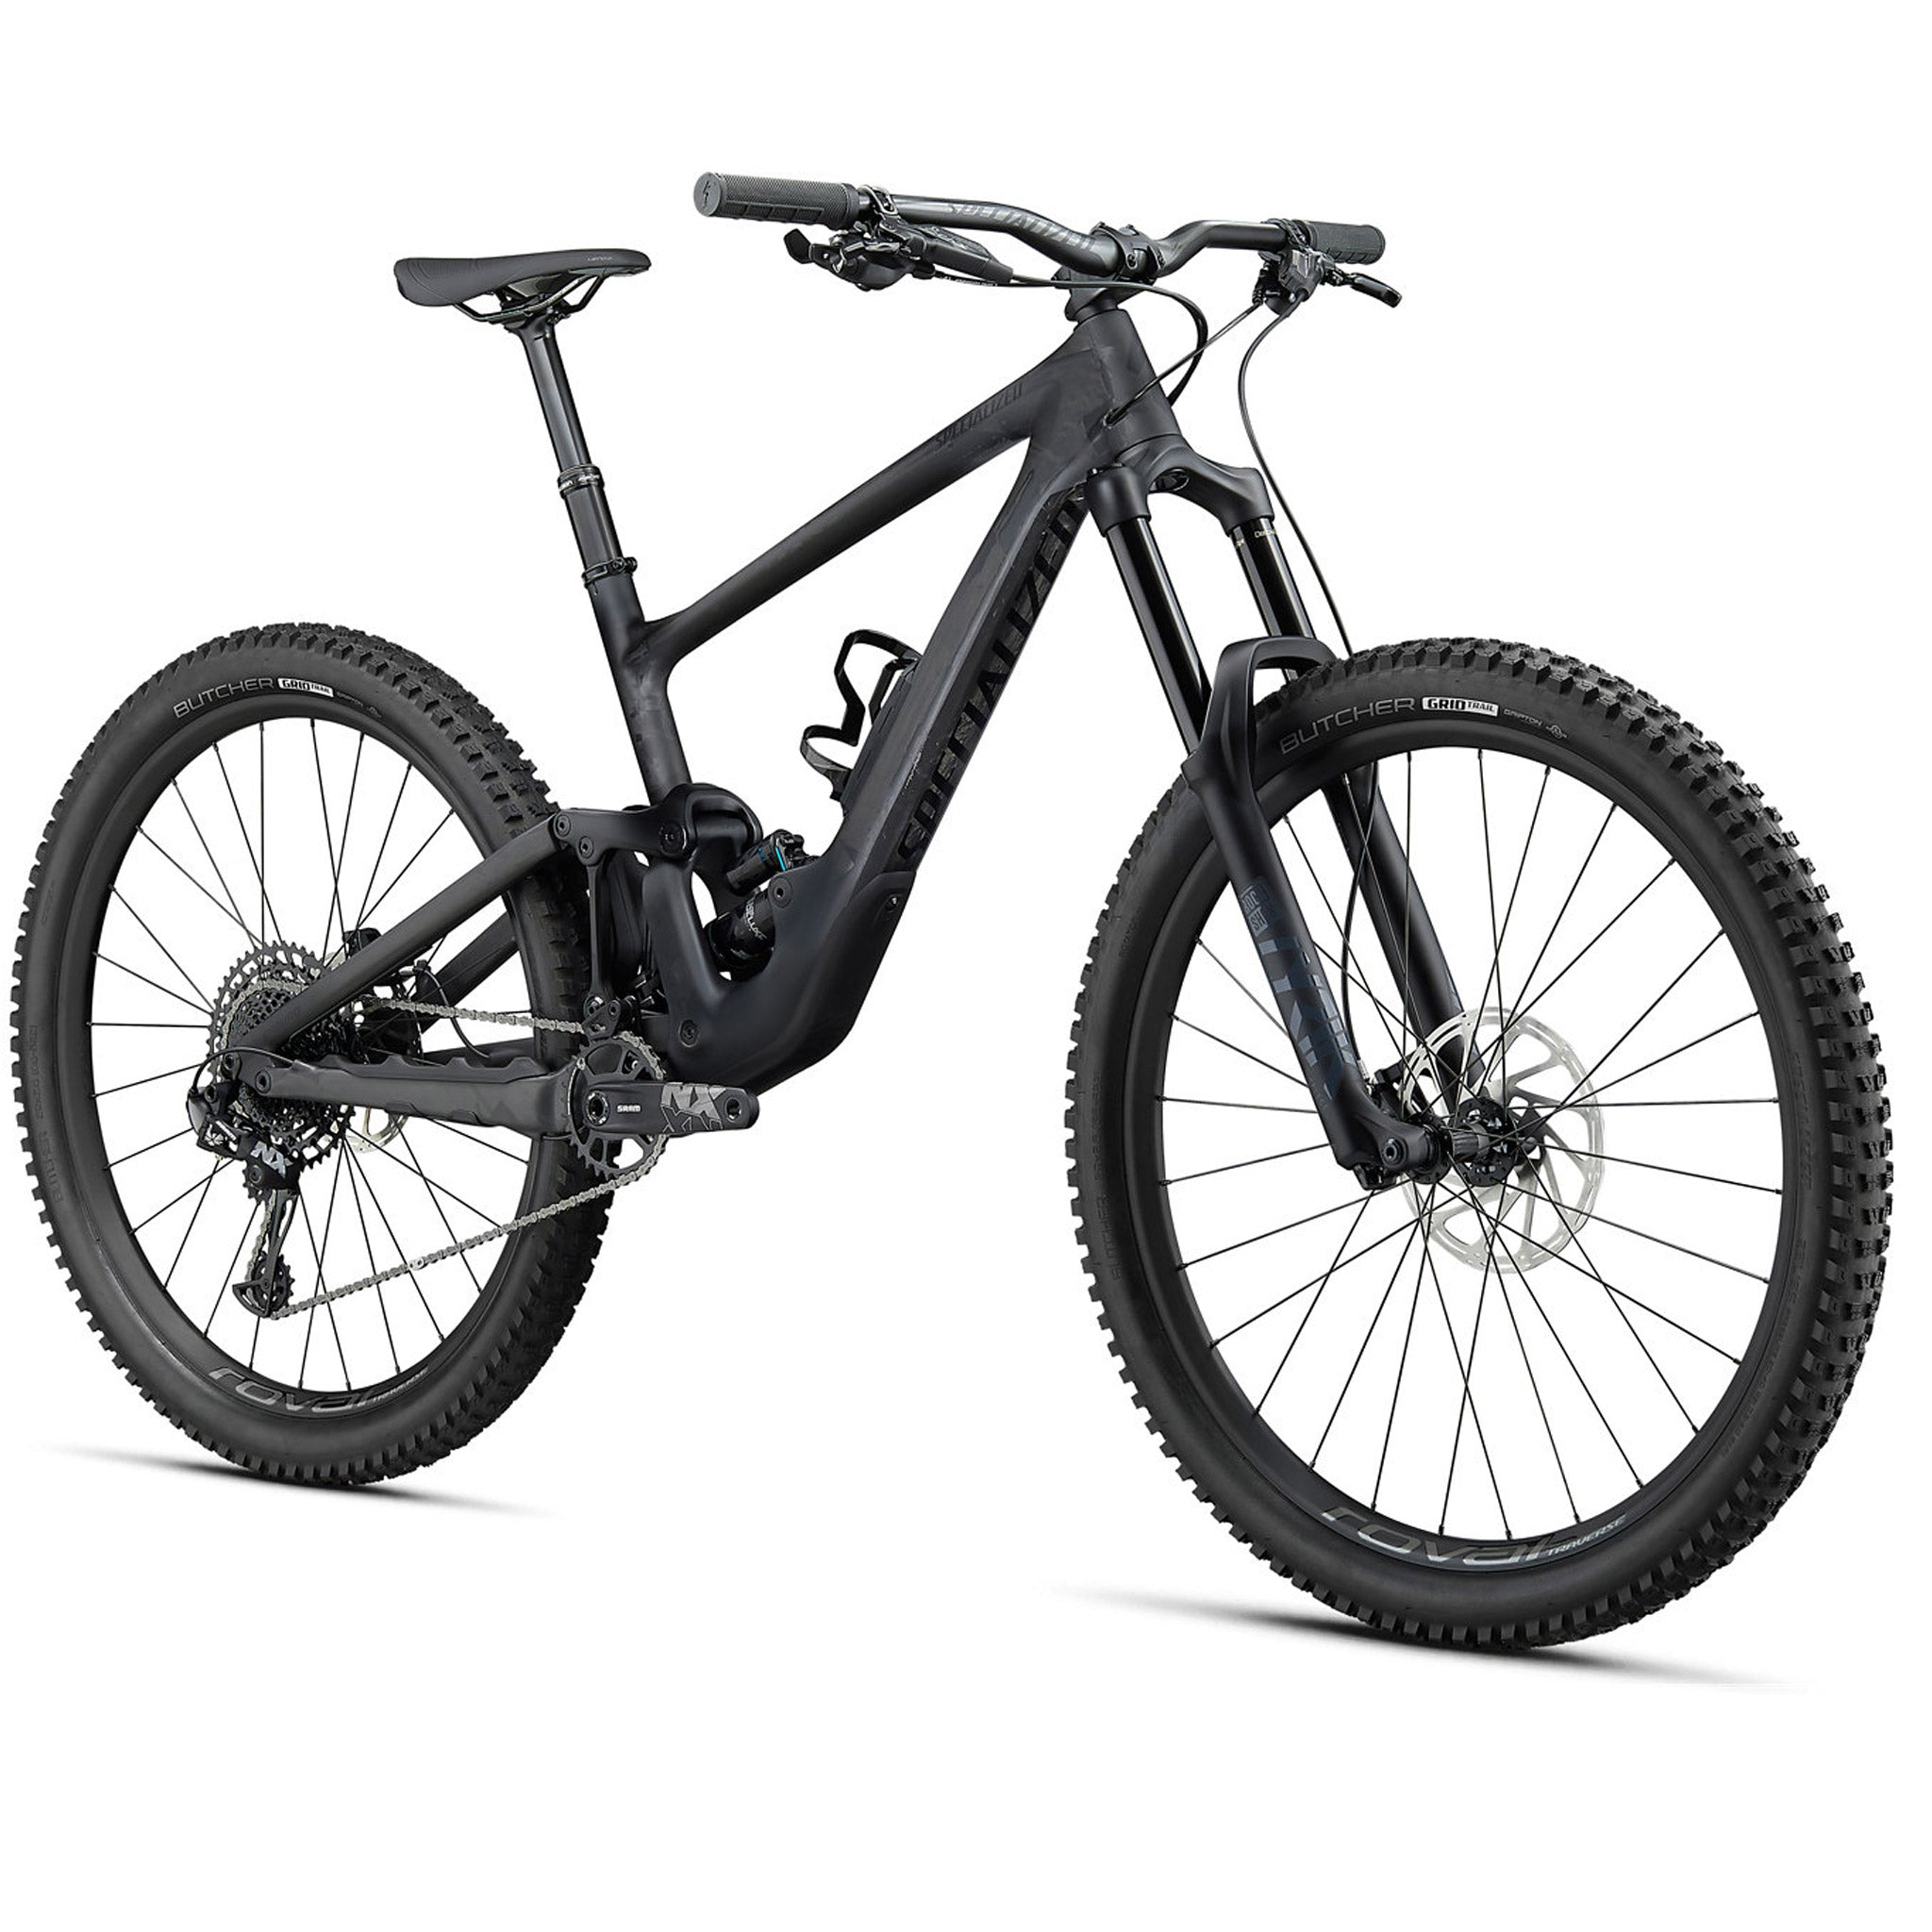 2021 Specialized Enduro Comp, Satin Black, 29